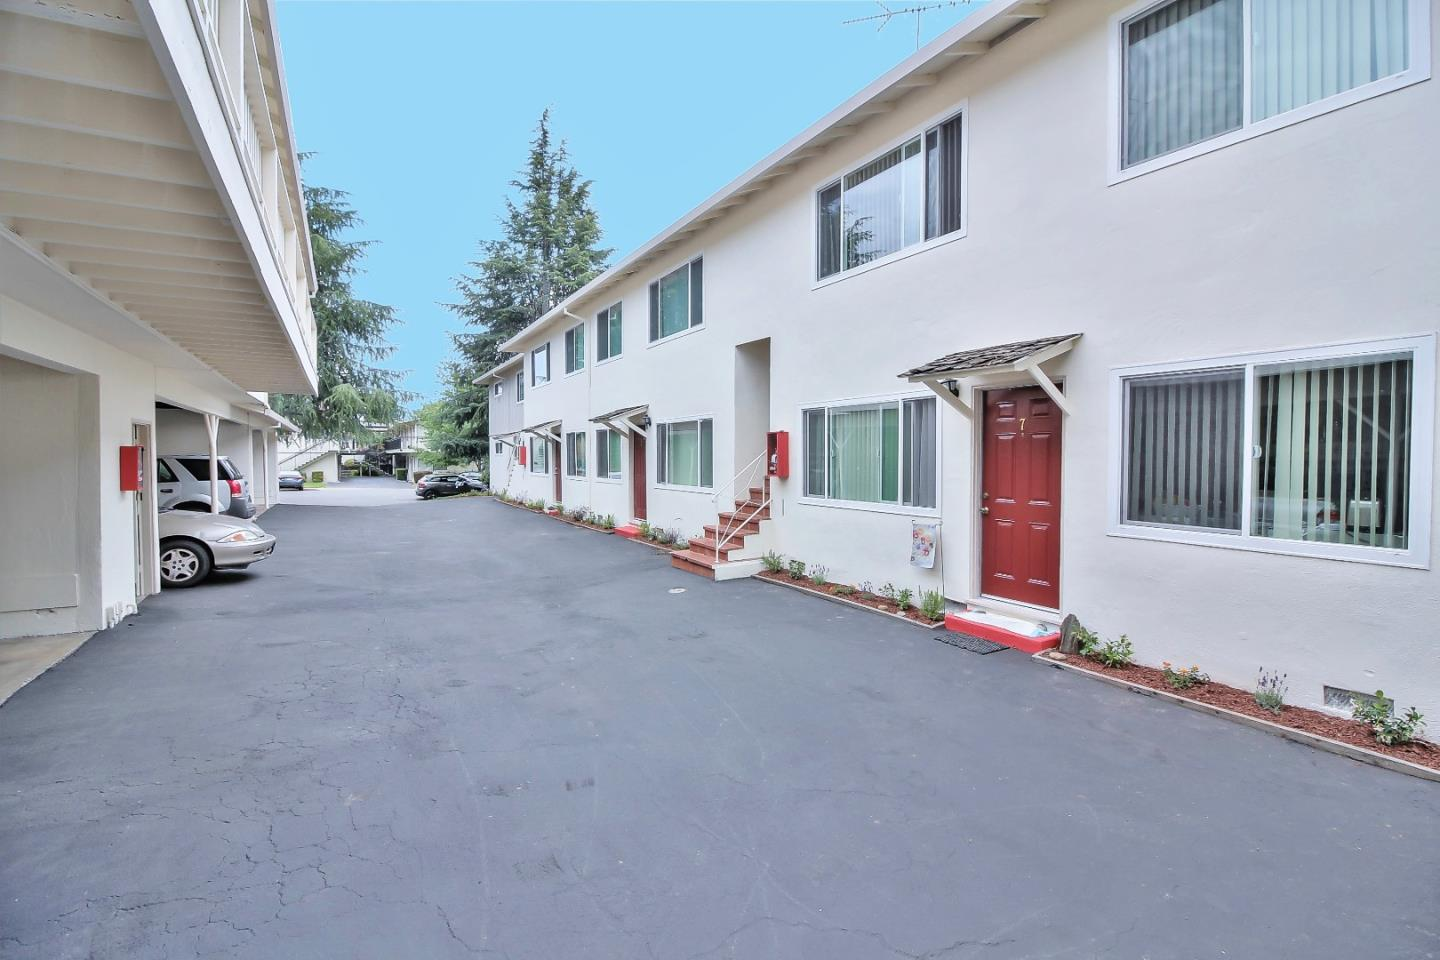 Additional photo for property listing at 4309 Collins Court 4309 Collins Court Mountain View, Kalifornien 94040 Vereinigte Staaten